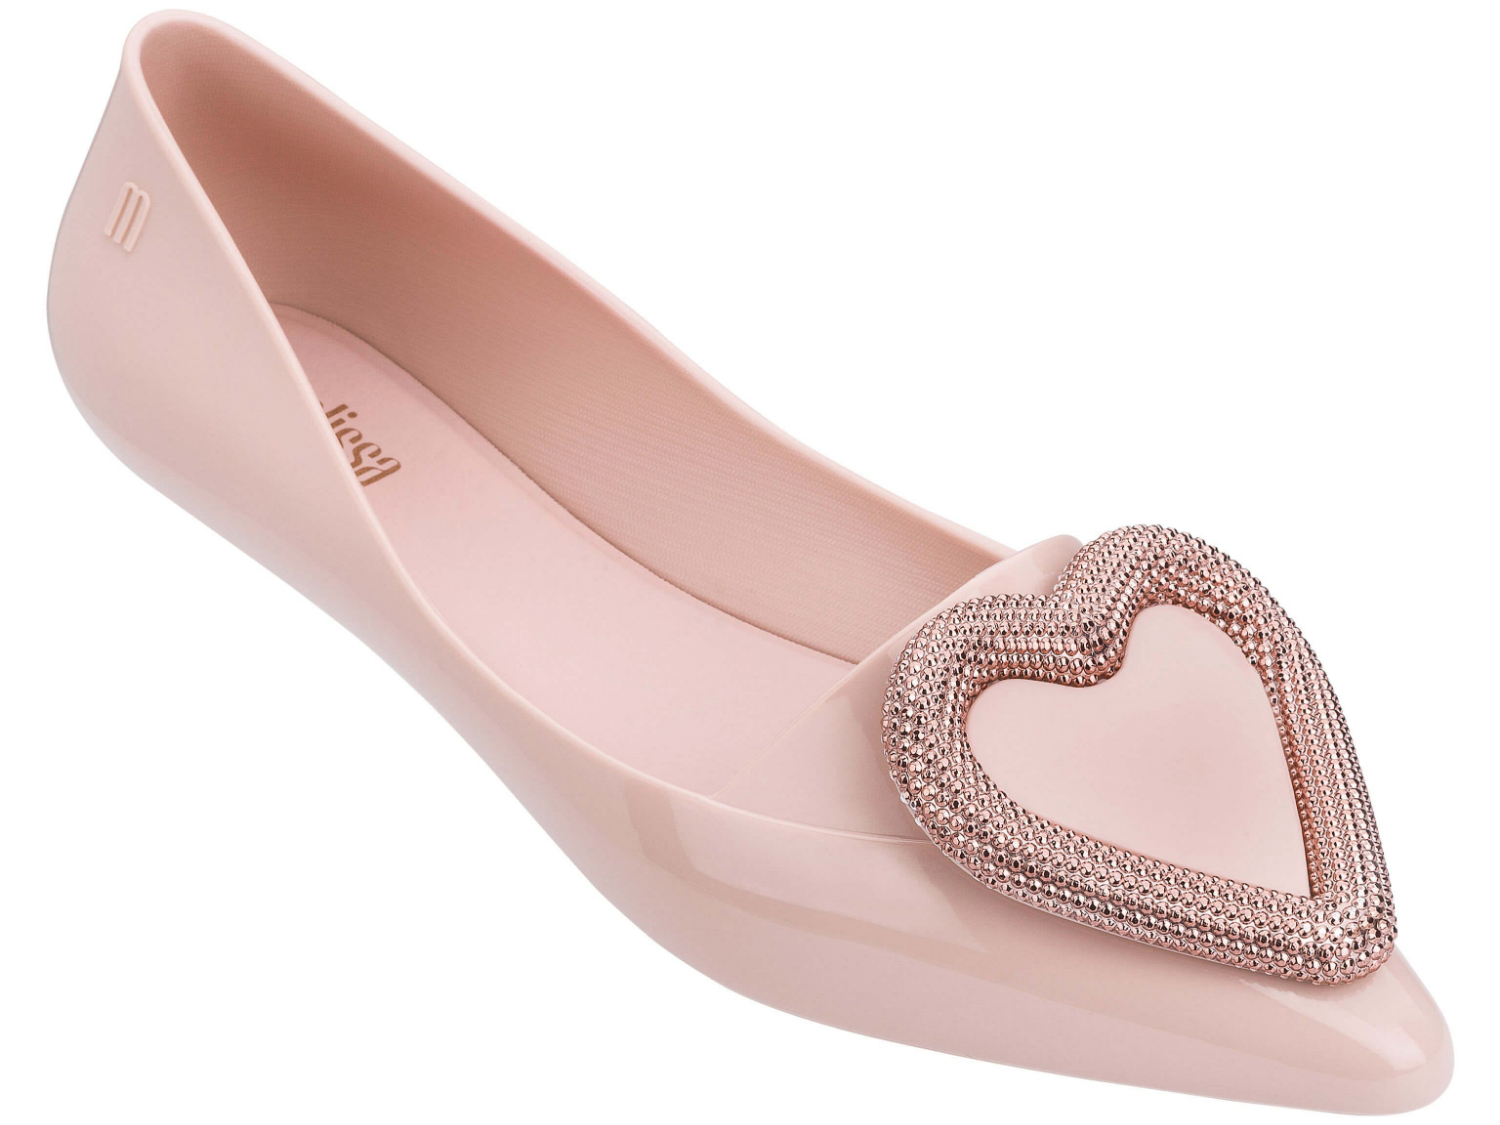 Flat Sandals Woman Shoes Low-Heel Heart Closed-Toe Melissa Women for Pointy